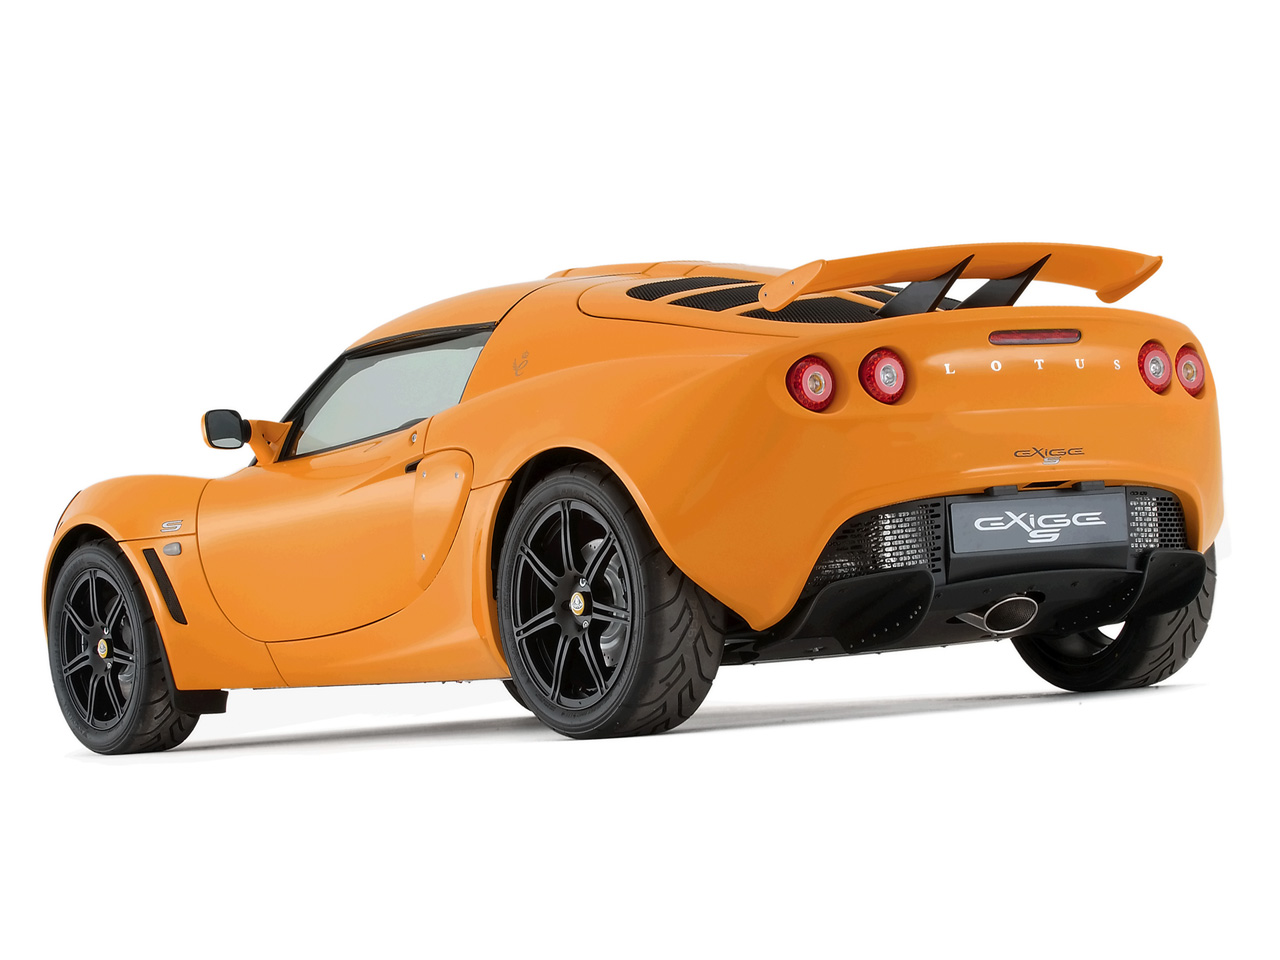 2006 Lotus Exige S - Rear Angle - 1280x960 Wallpaper